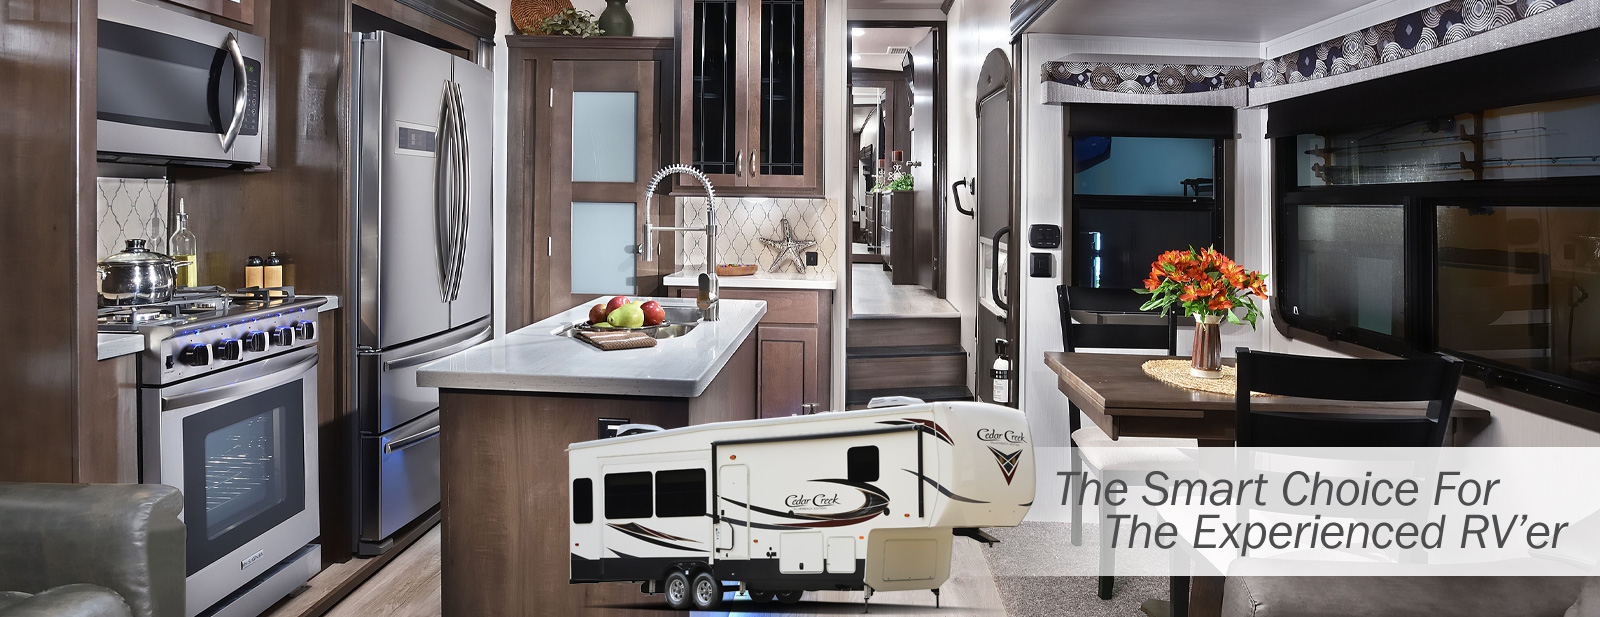 Cedar Creek Silverback Edition RVs